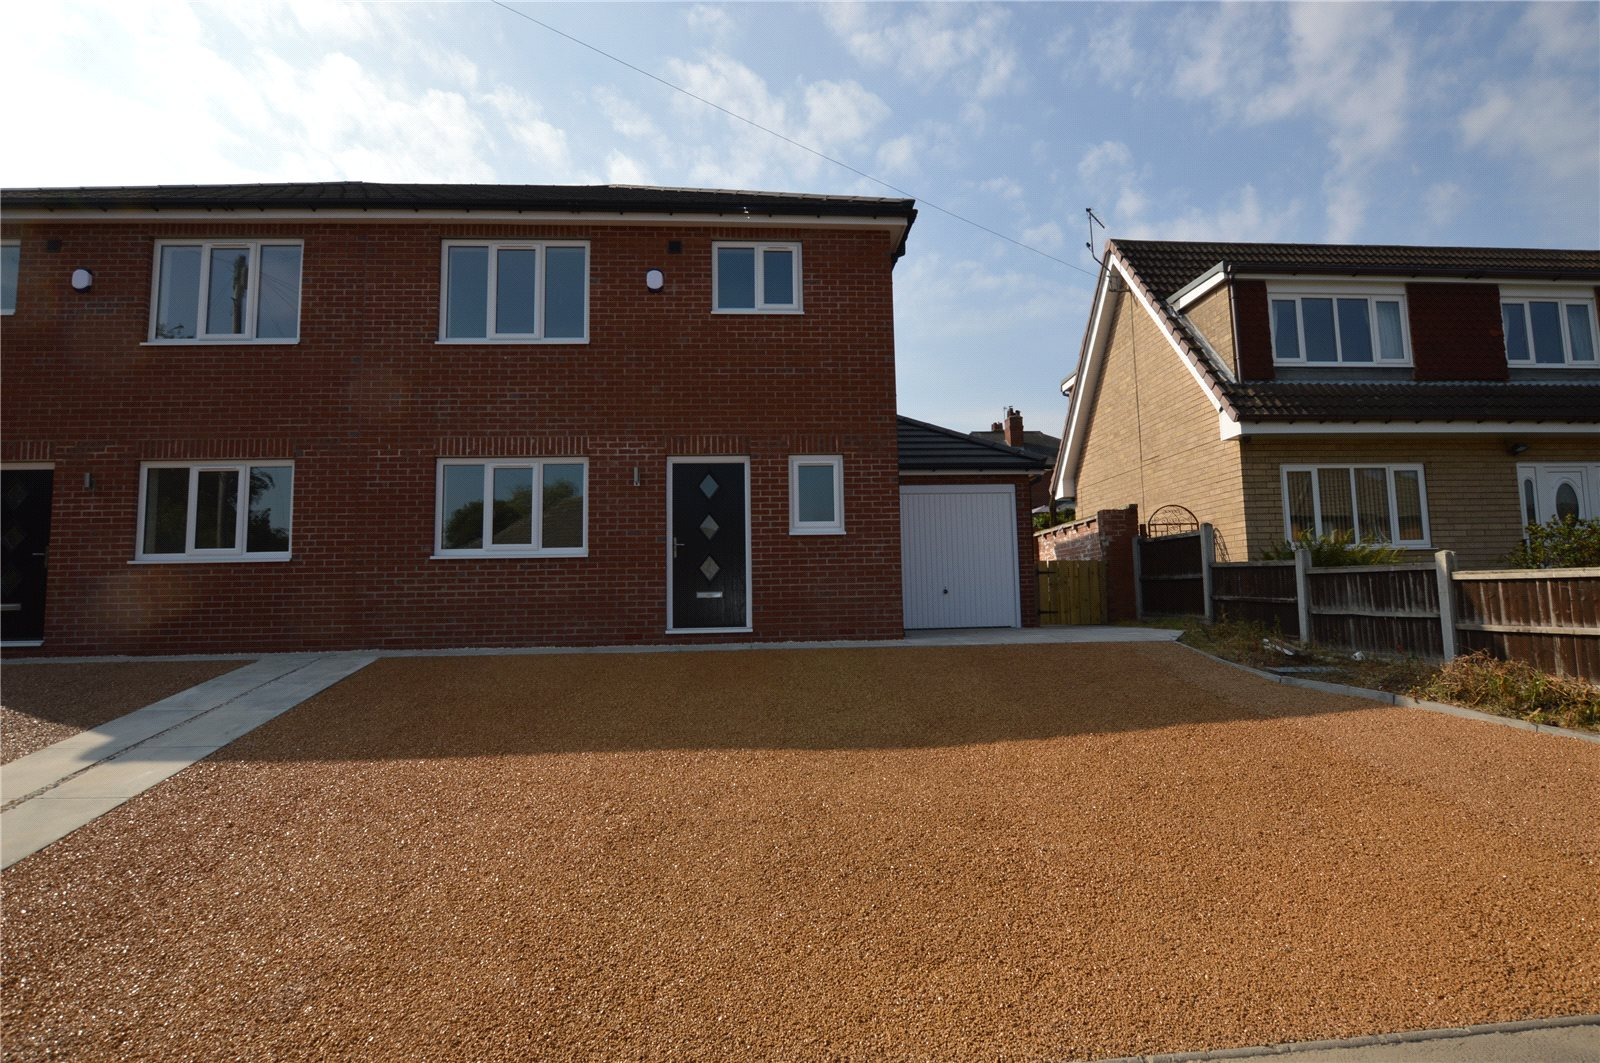 Property for sale in Rothwell, new build, home exterior red brick